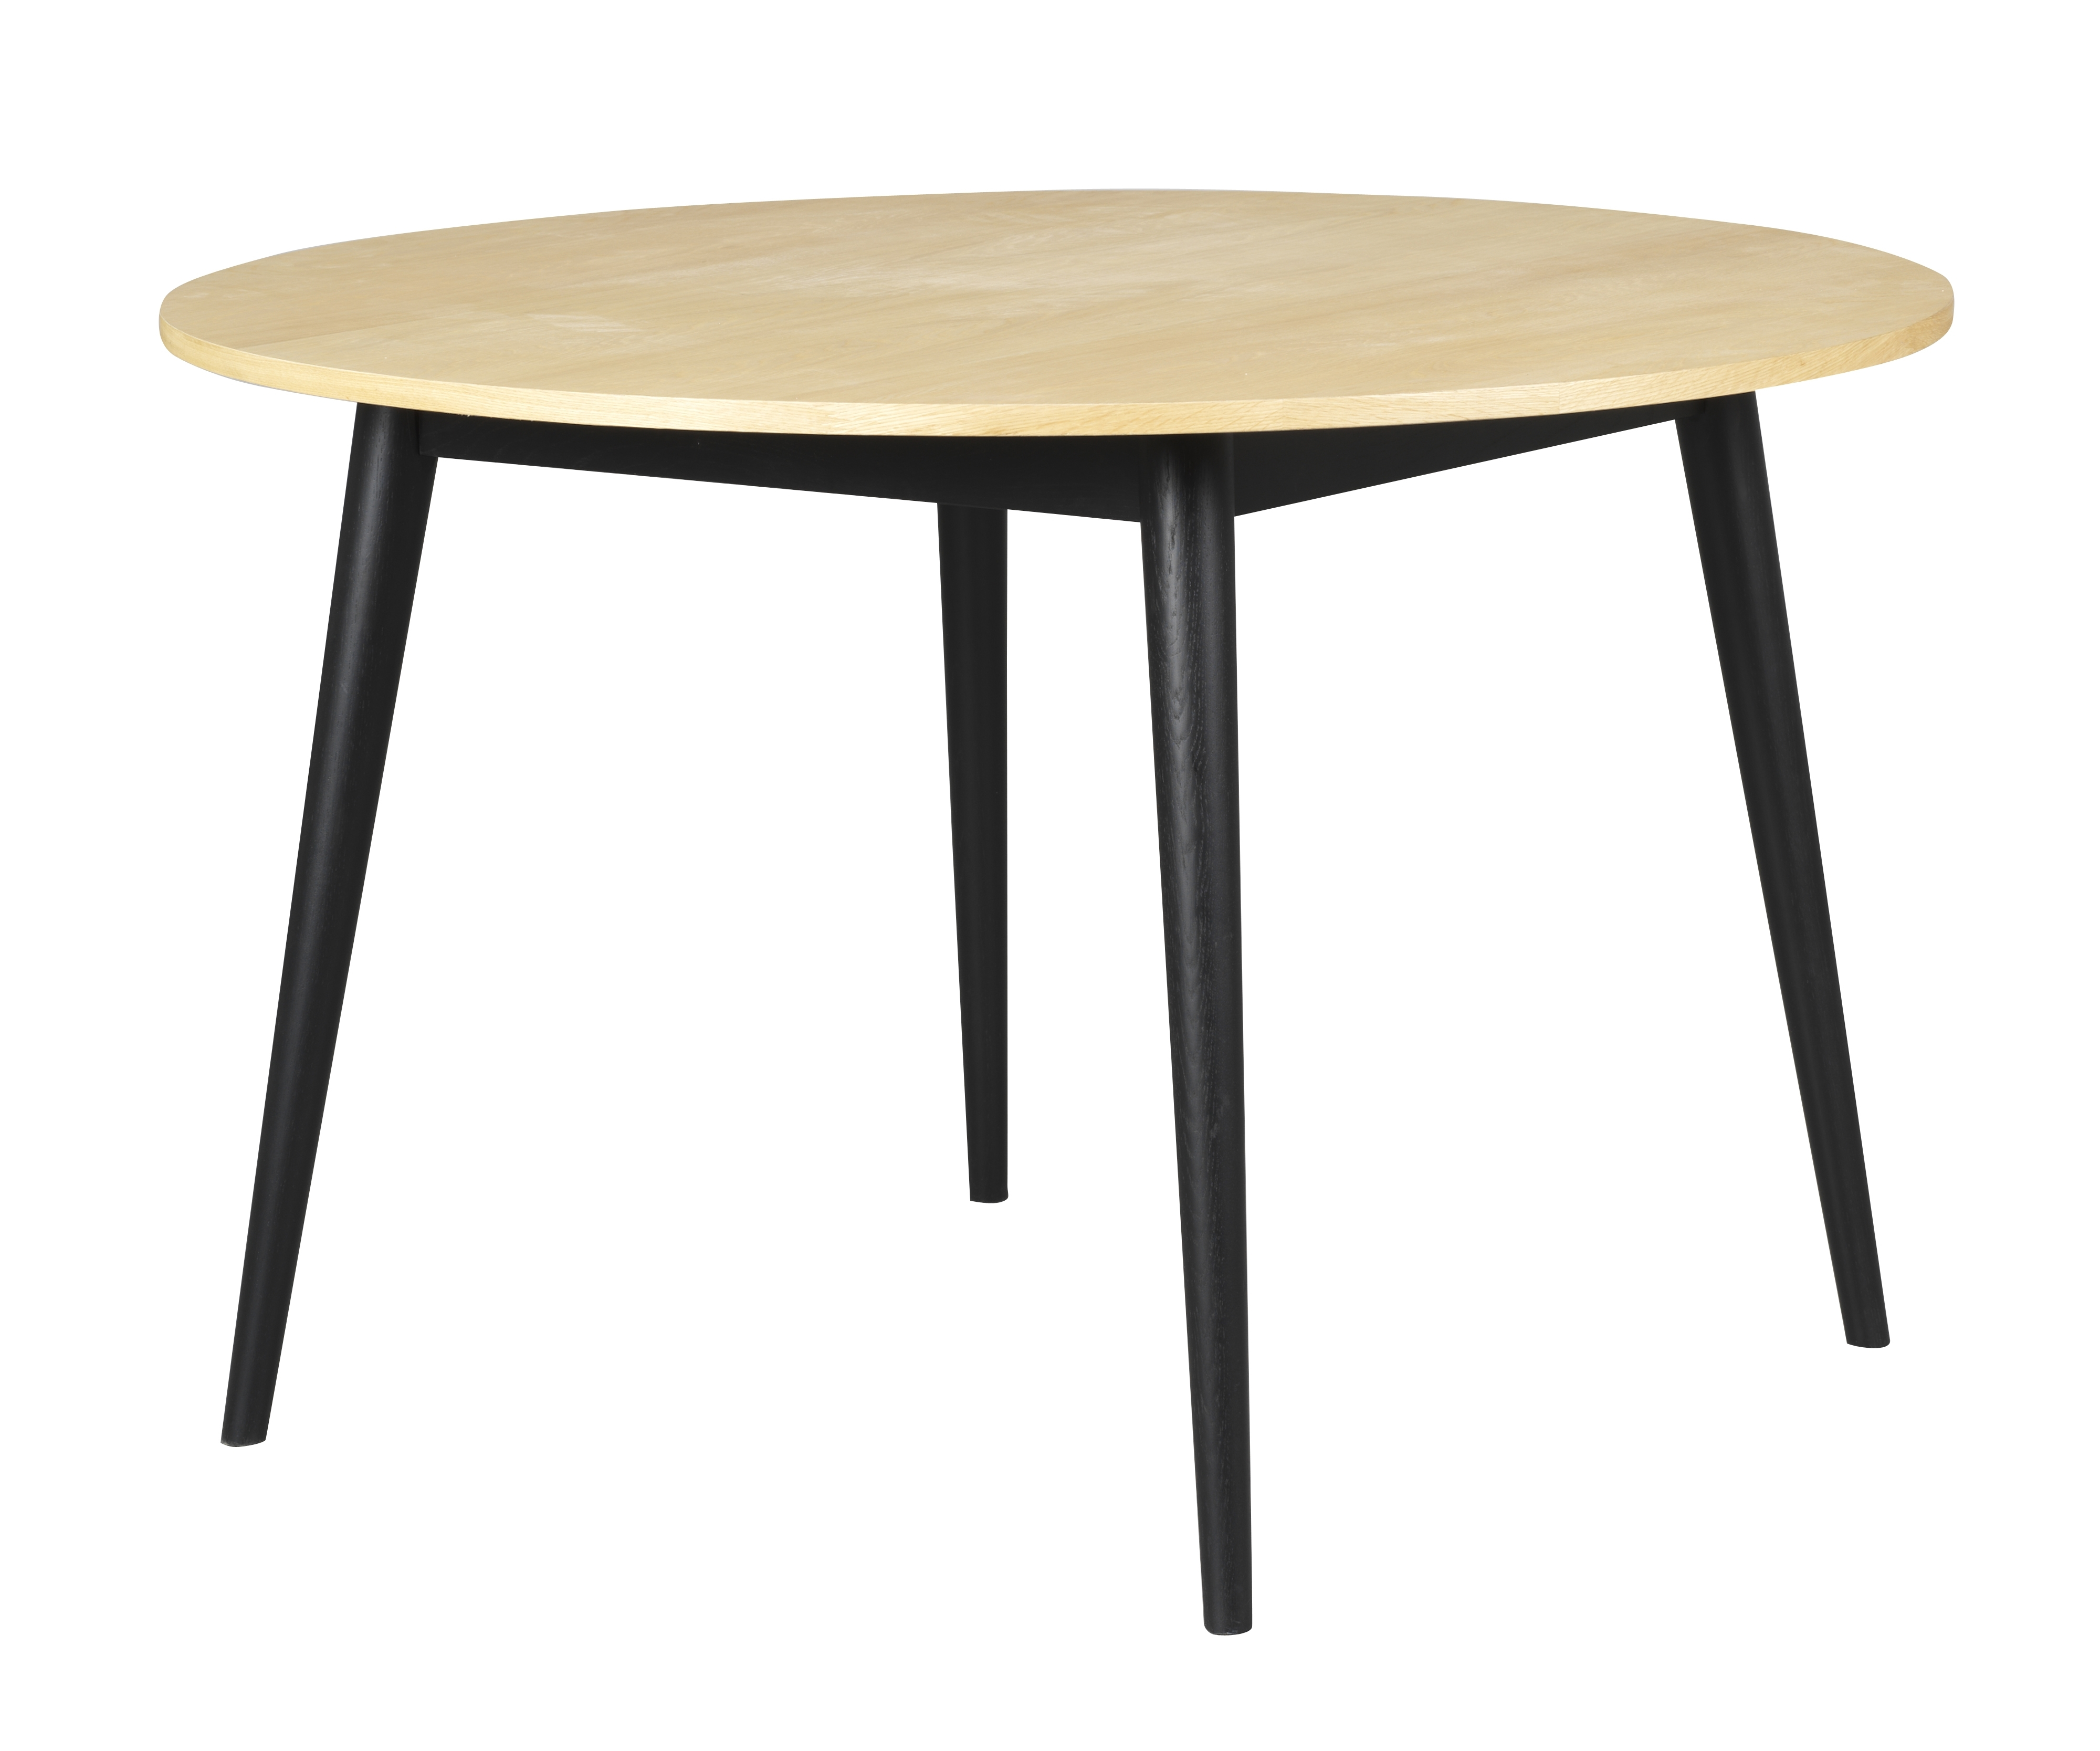 Furniture From Rowico Pertaining To Favorite Vienna Dining Tables (View 7 of 25)